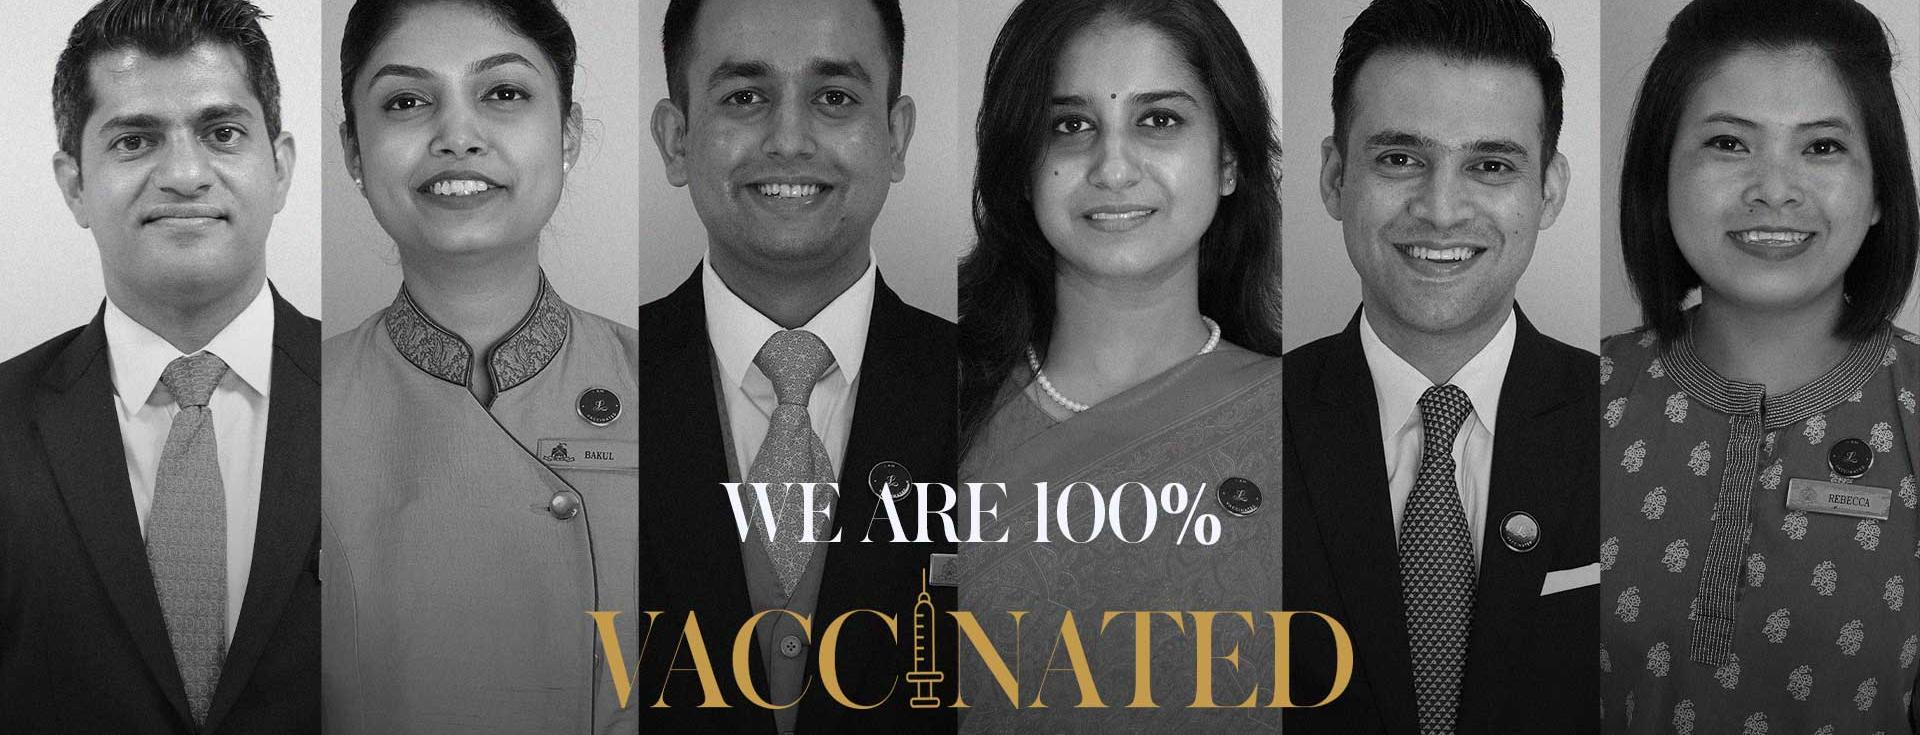 THE LEELA PALACES, HOTELS AND RESORTS ANNOUNCES COMPLETE VACCINATION OF ALL ITS ELIGIBLE ASSOCIATES